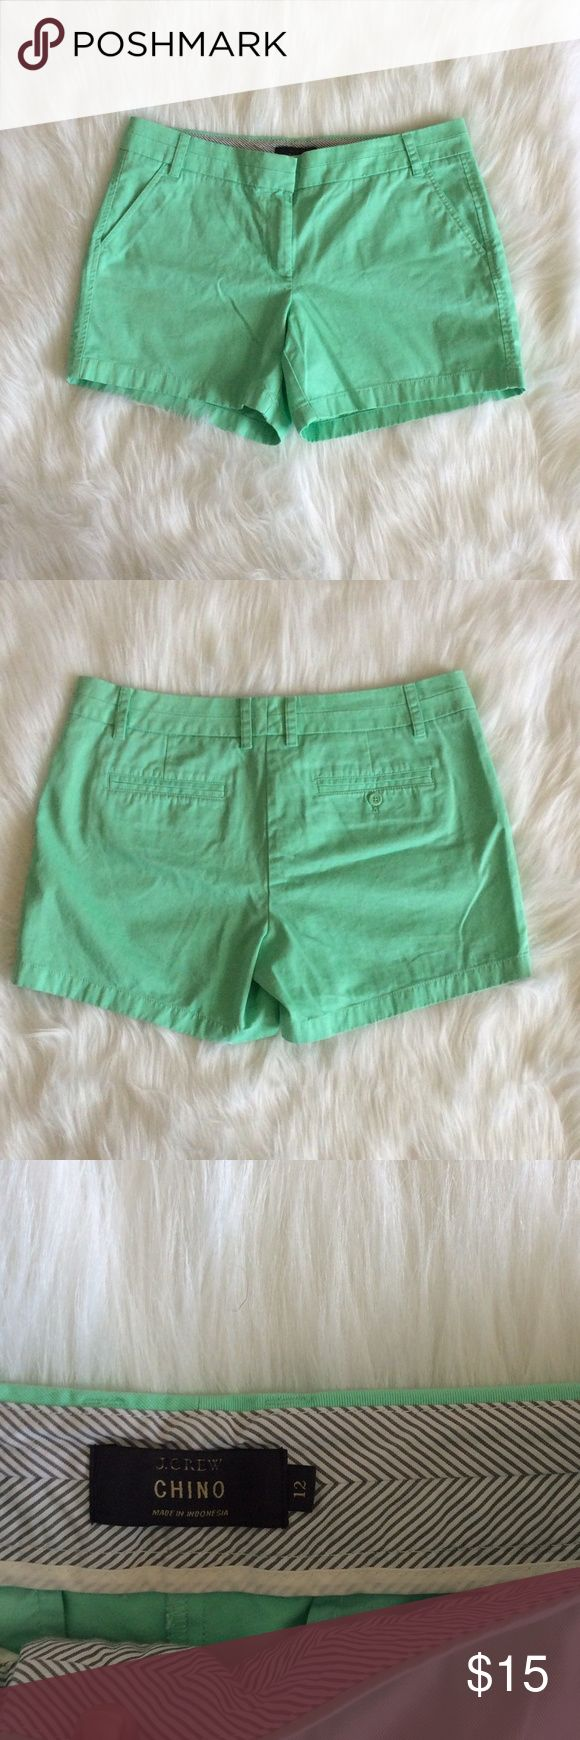 J Crew Chino Casual Mint Green Shorts Size 12 Flat Lay Measurements  Size: 12 Length: 13 1/2 Waist 17 1/2 J. Crew Shorts